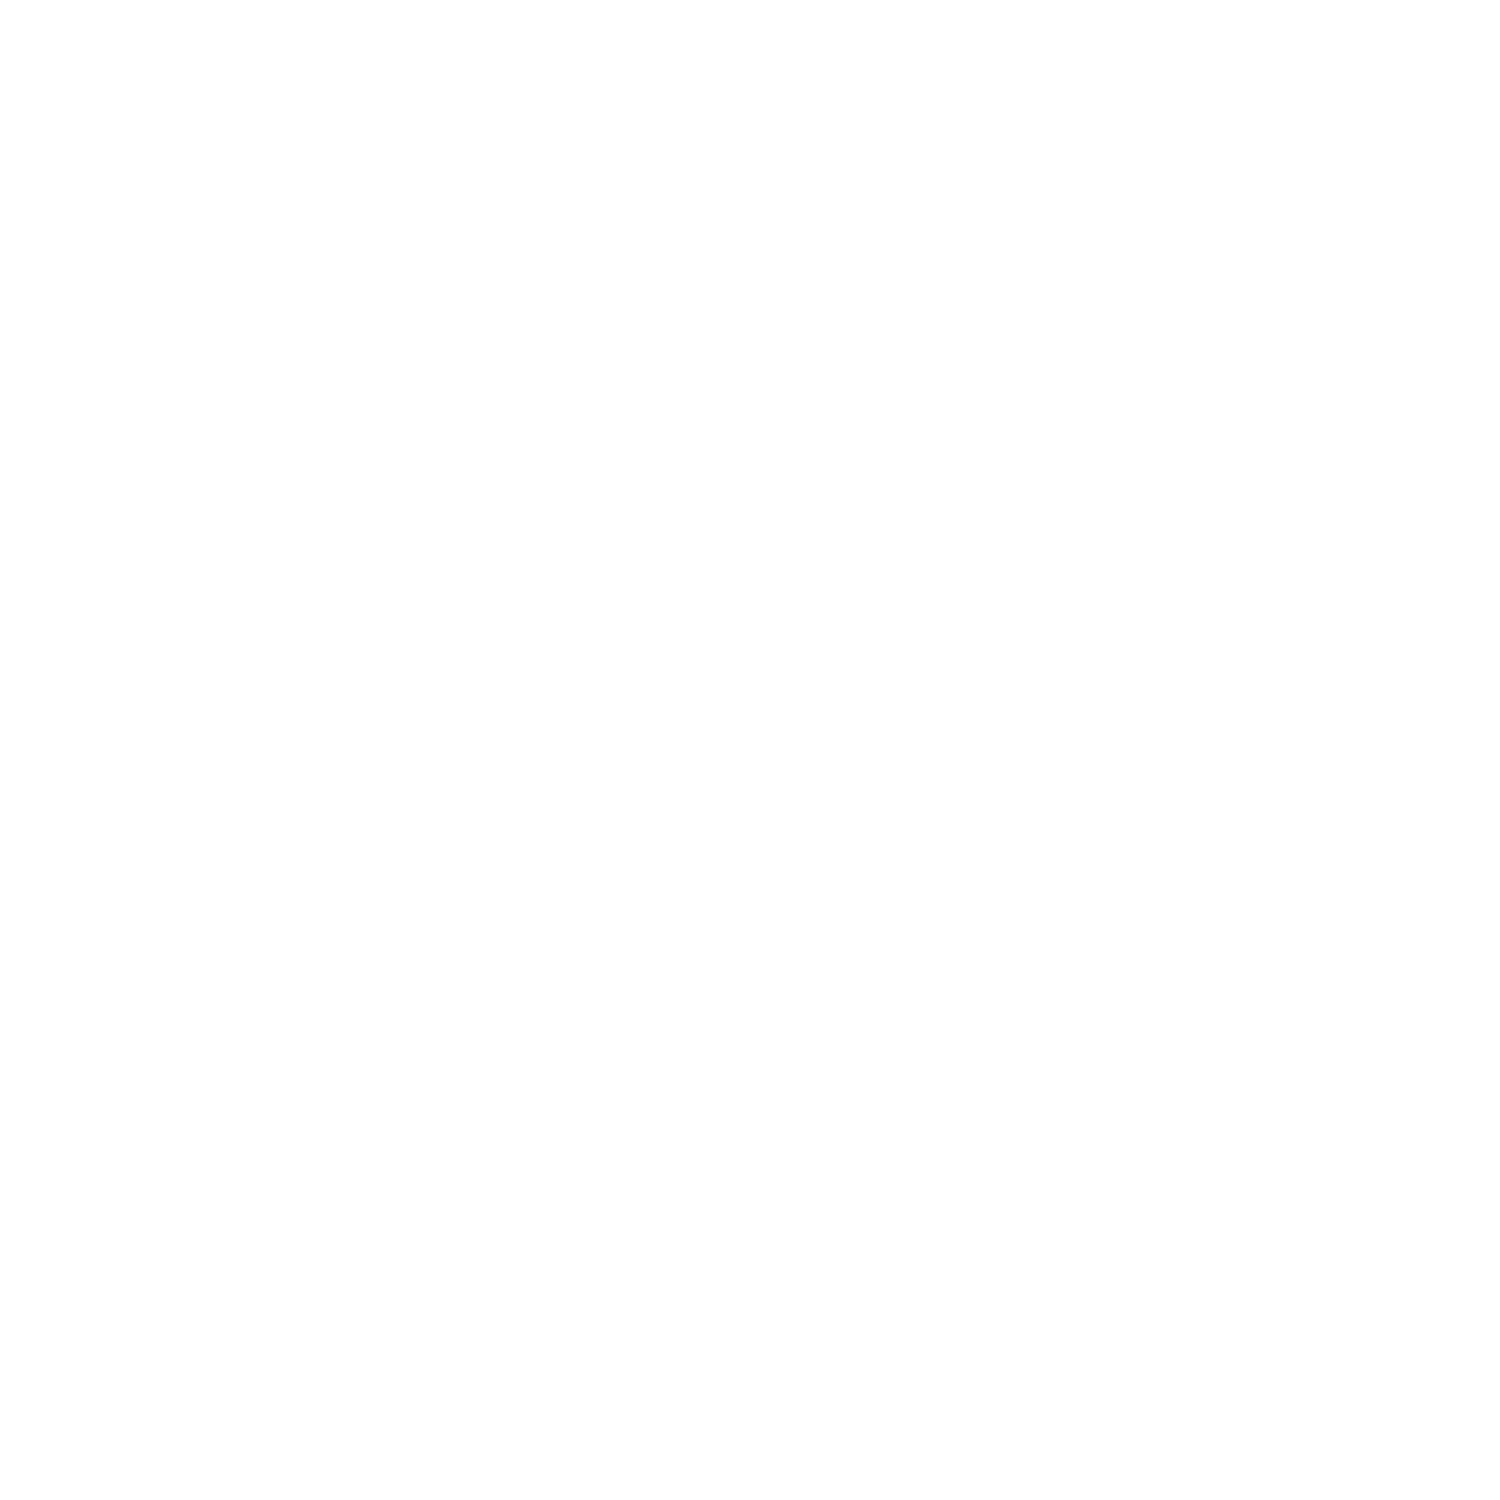 Landscaping drawing famous. Dirt